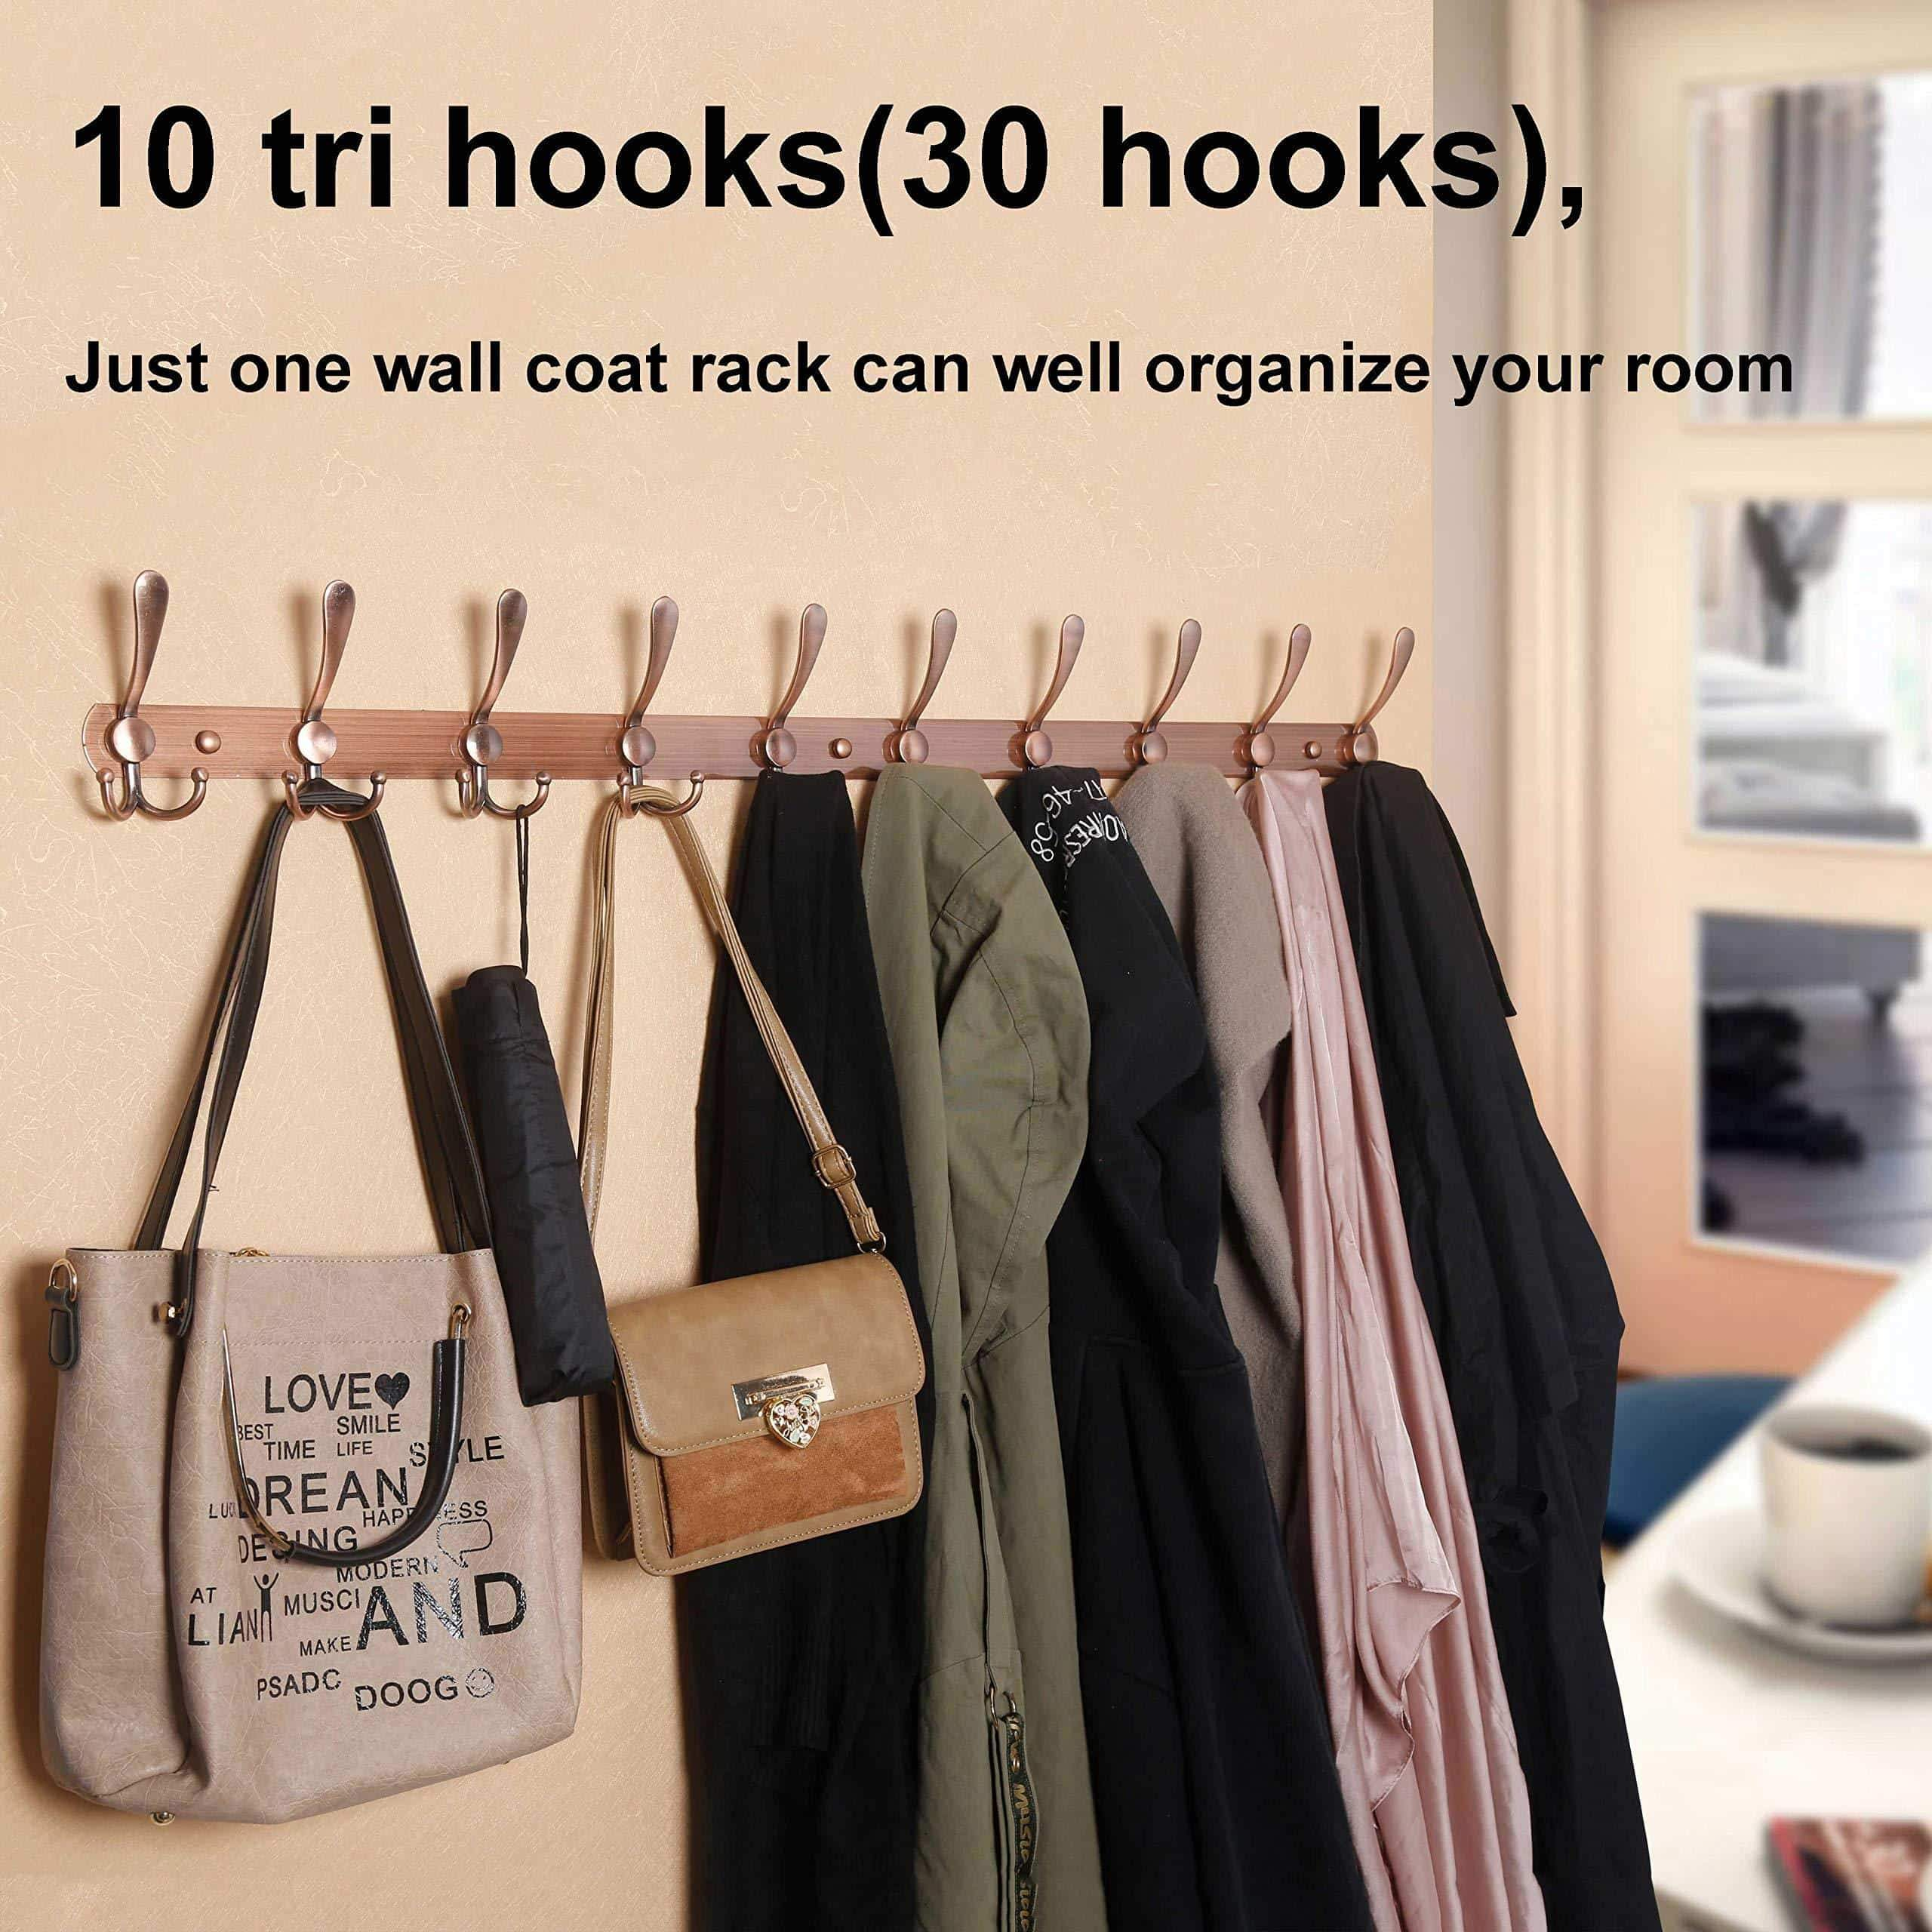 Save webi coat rack wall mounted 16 hole to hole center10 tri hook for hanging coats metal coat hook rack rail wall coat rack with hooks coat hanger wall mount for entryway jacket antique copper 2 pcs